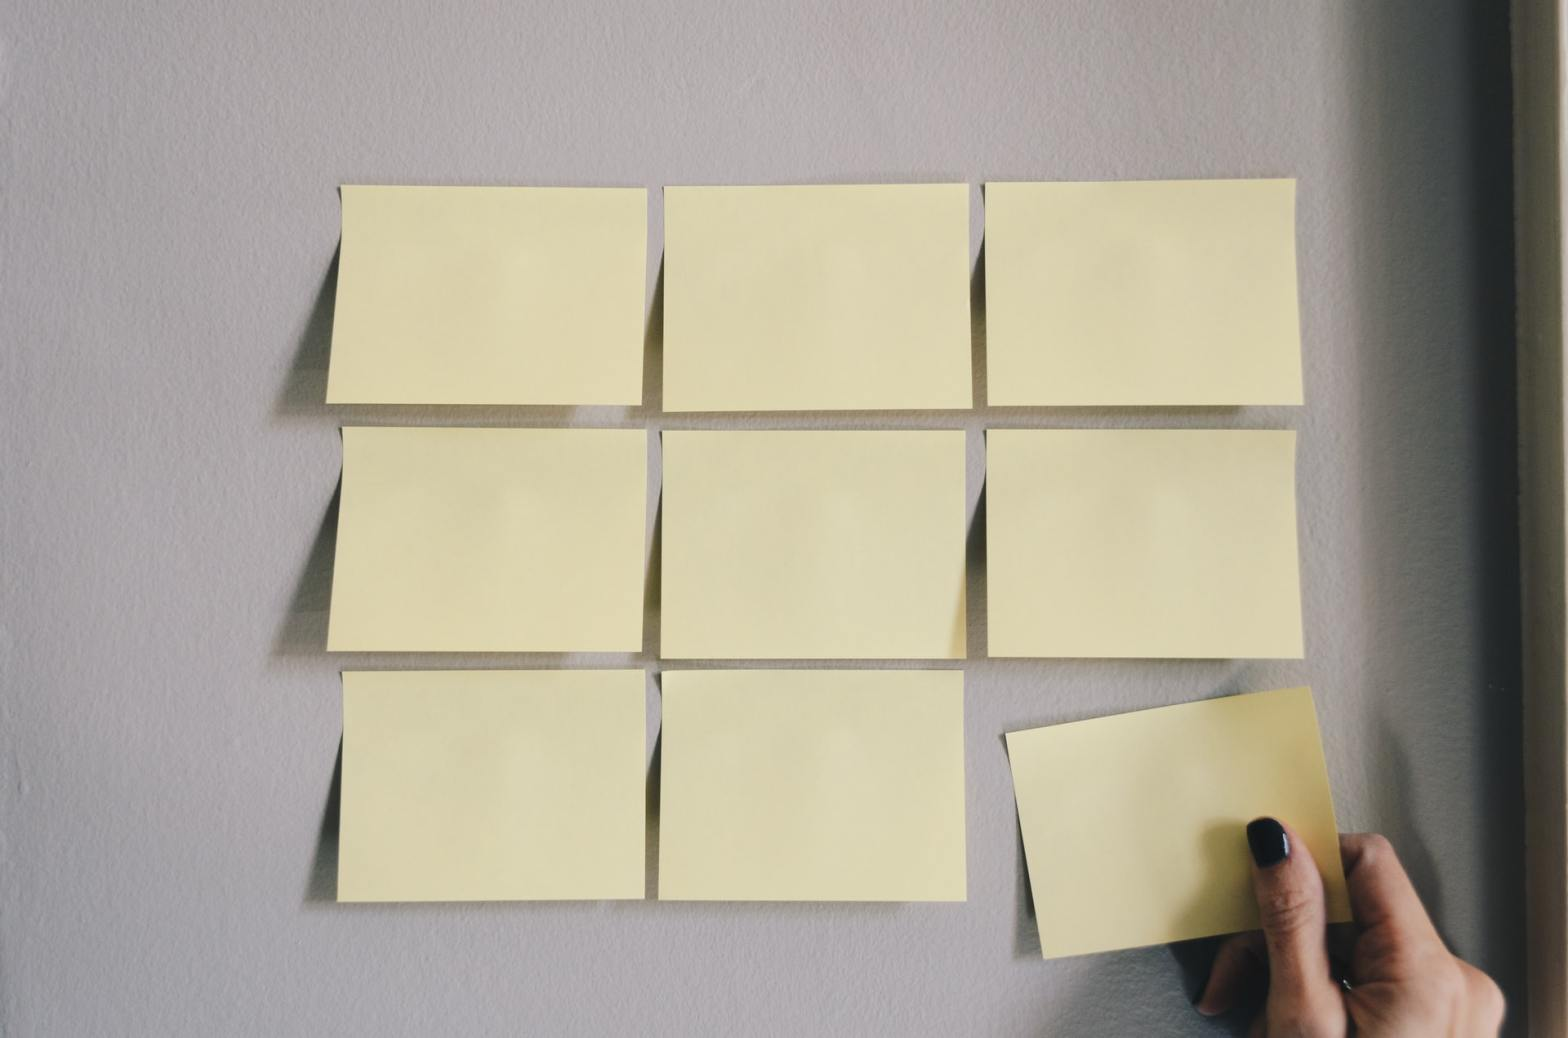 A hand placing post-it notes in a 3x3 arrangement. Photo by Kelly Sikkema on Unsplash